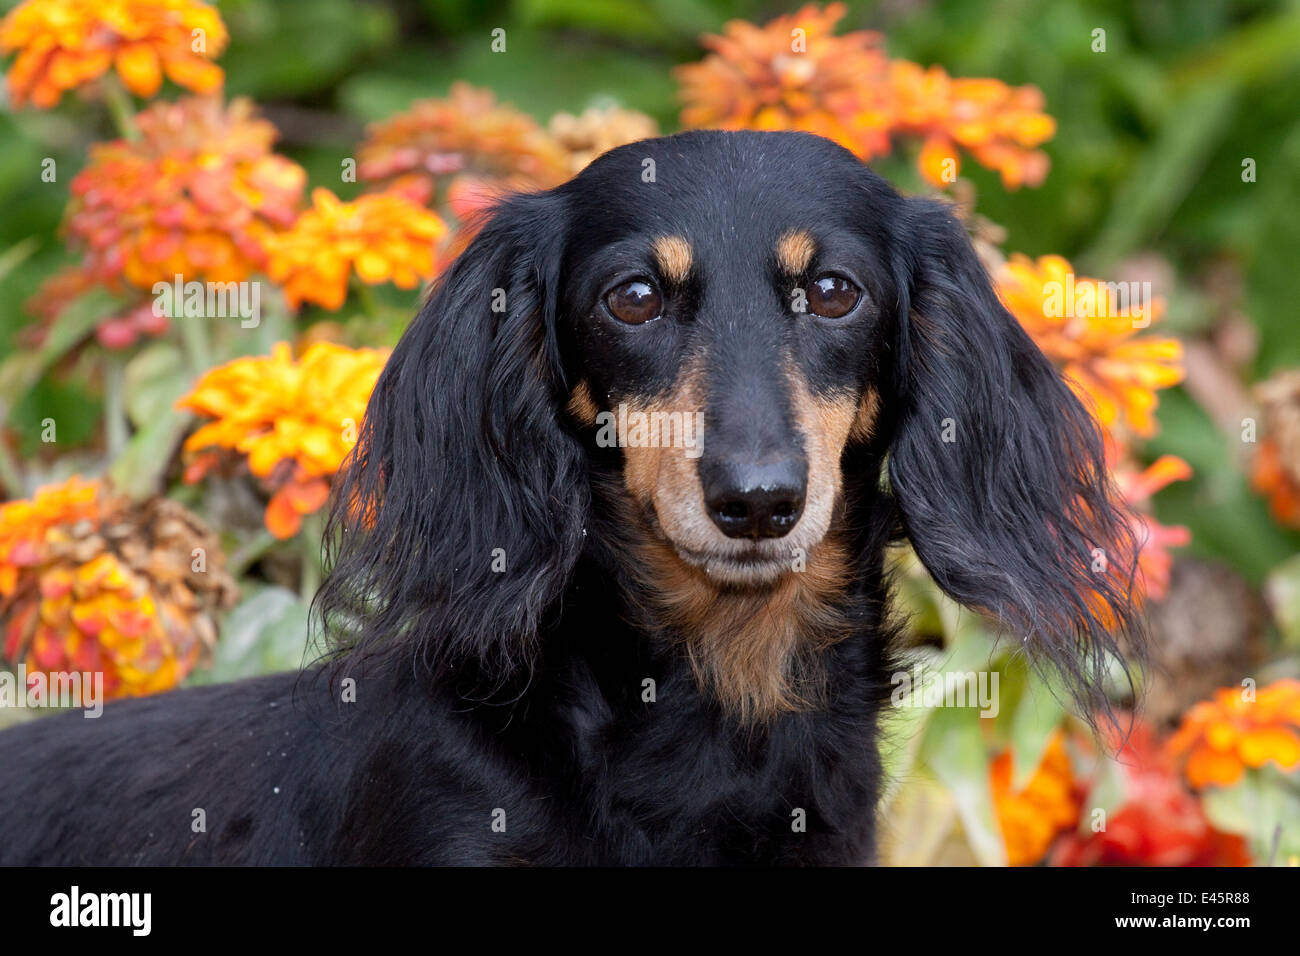 Head portrait of  black and tan smooth coated Dachshund with zinnias,  Illinois, USA - Stock Image